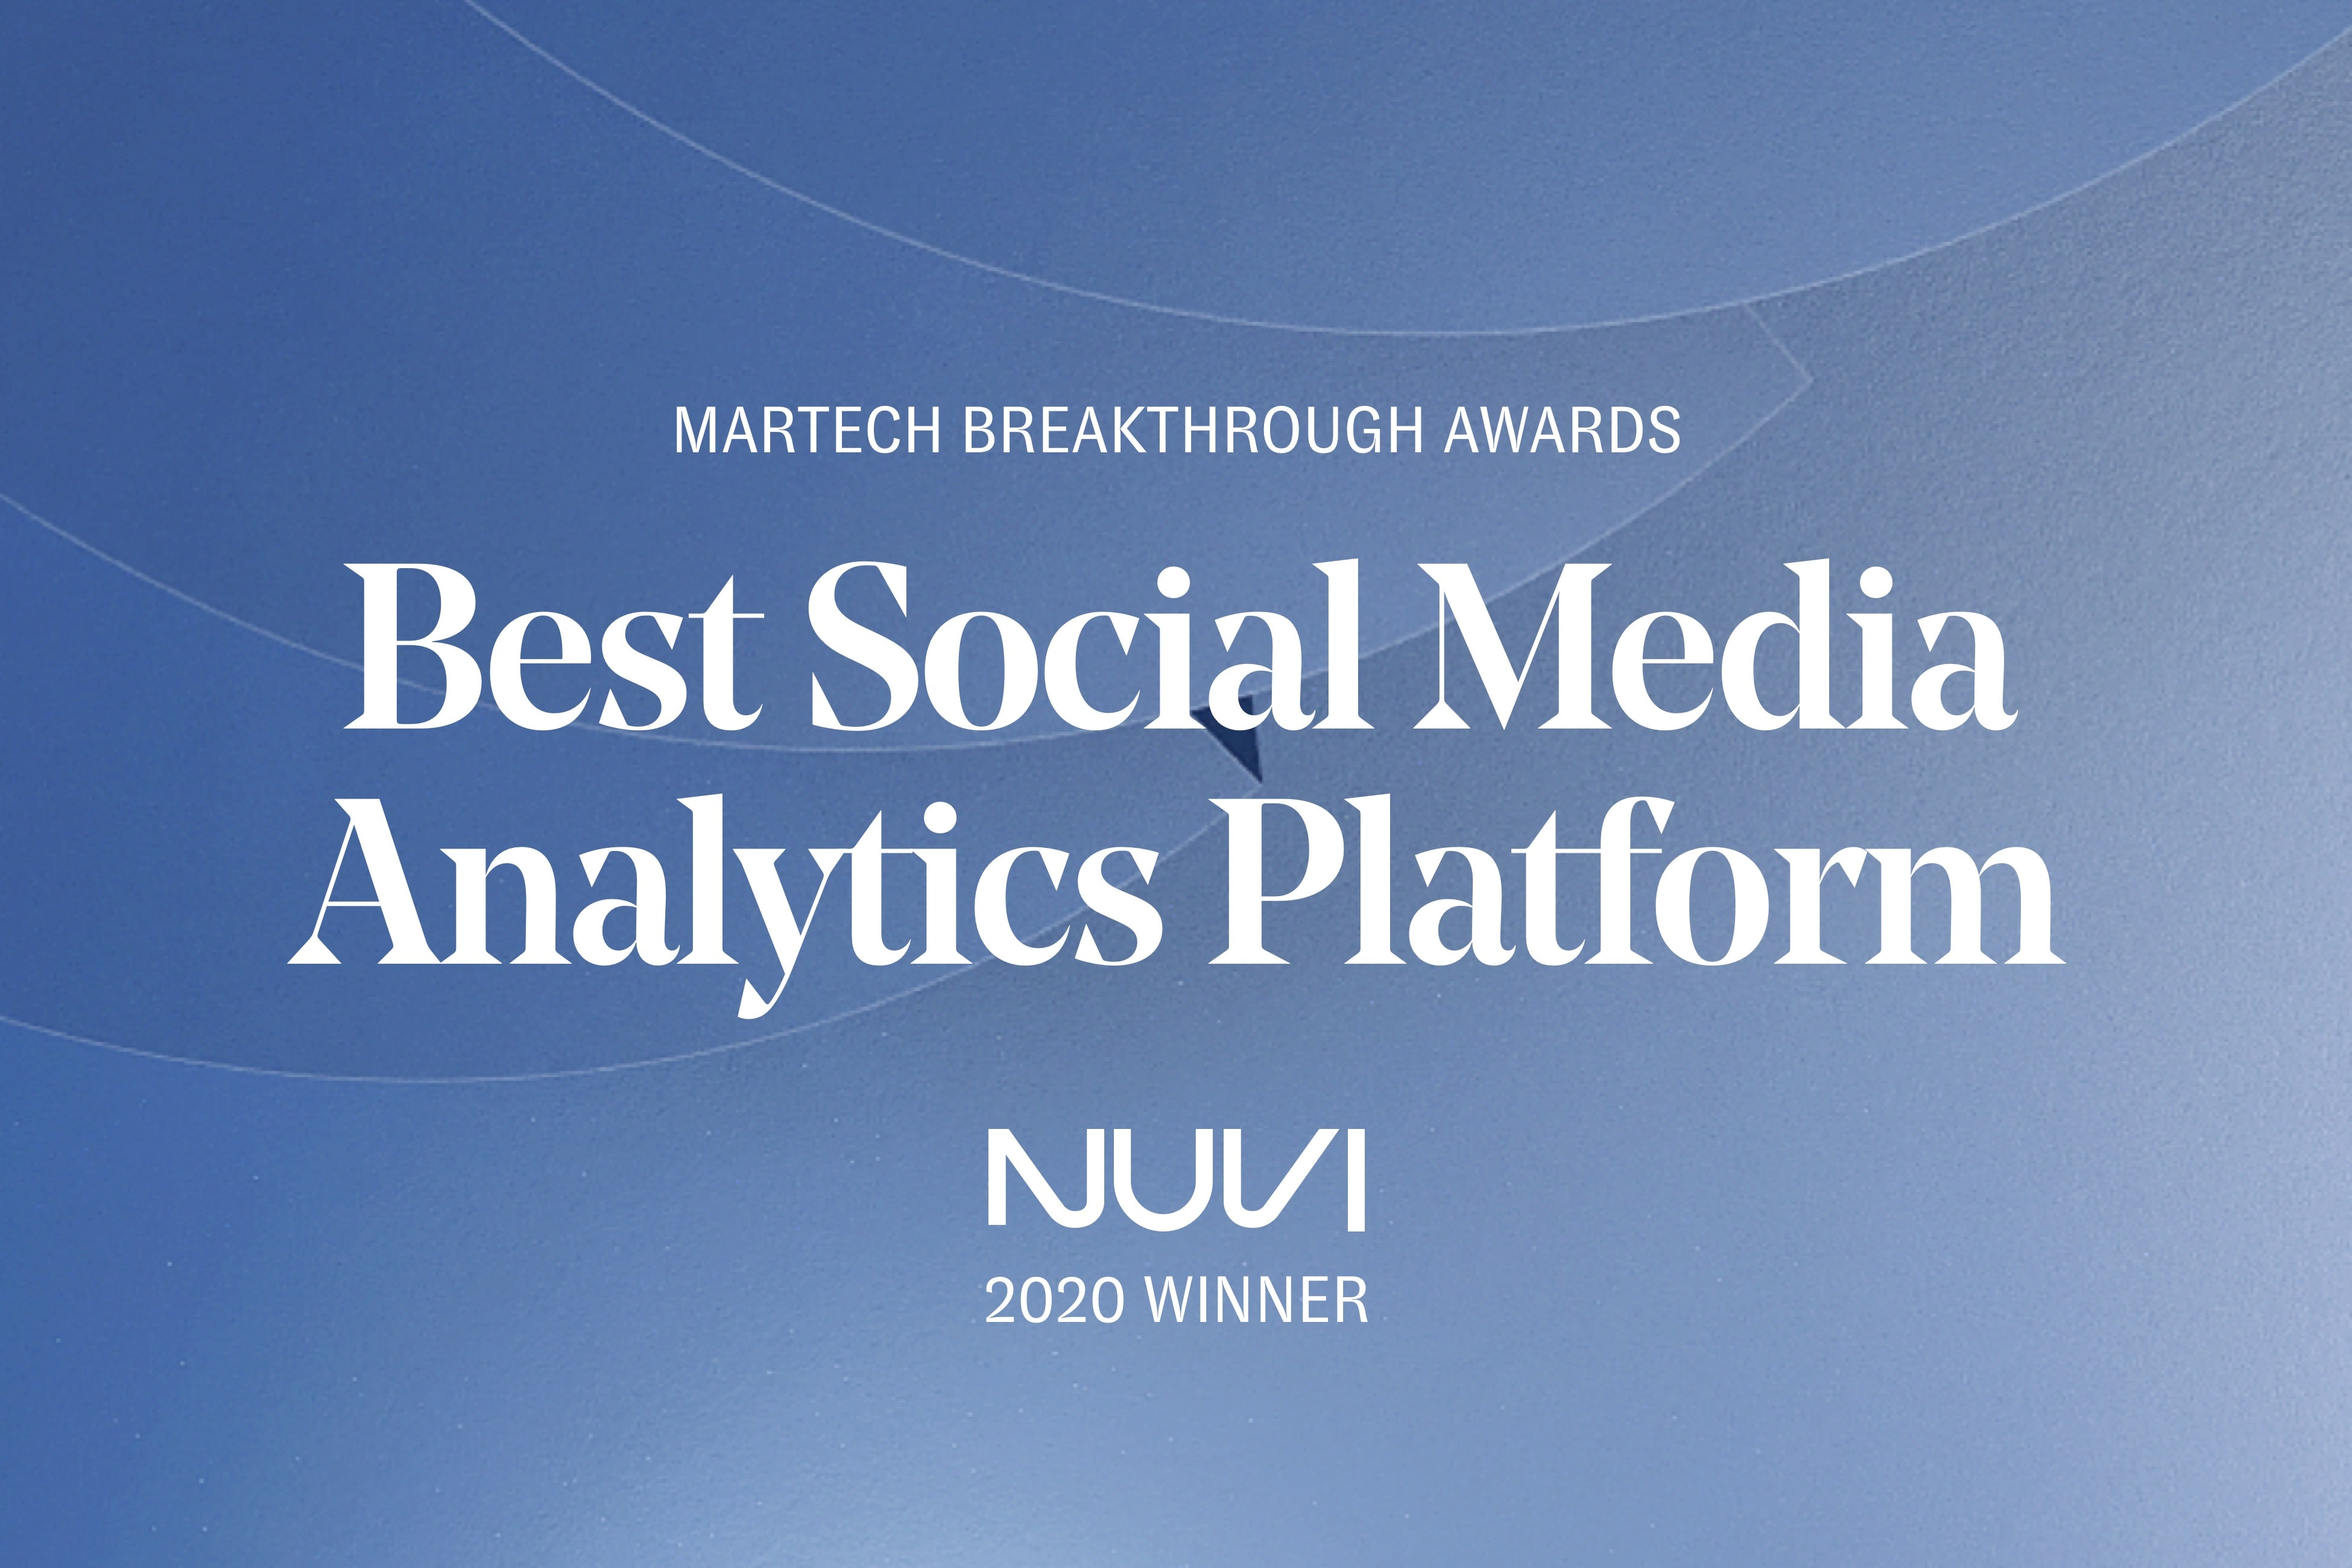 Nuvi wins best social media analytics platform. The award was given by MarTech. Nuvi is a Social Customer Experience Management platform that utilizes social media analytics and social media management software to enhance enterprise businesses' customer experience.